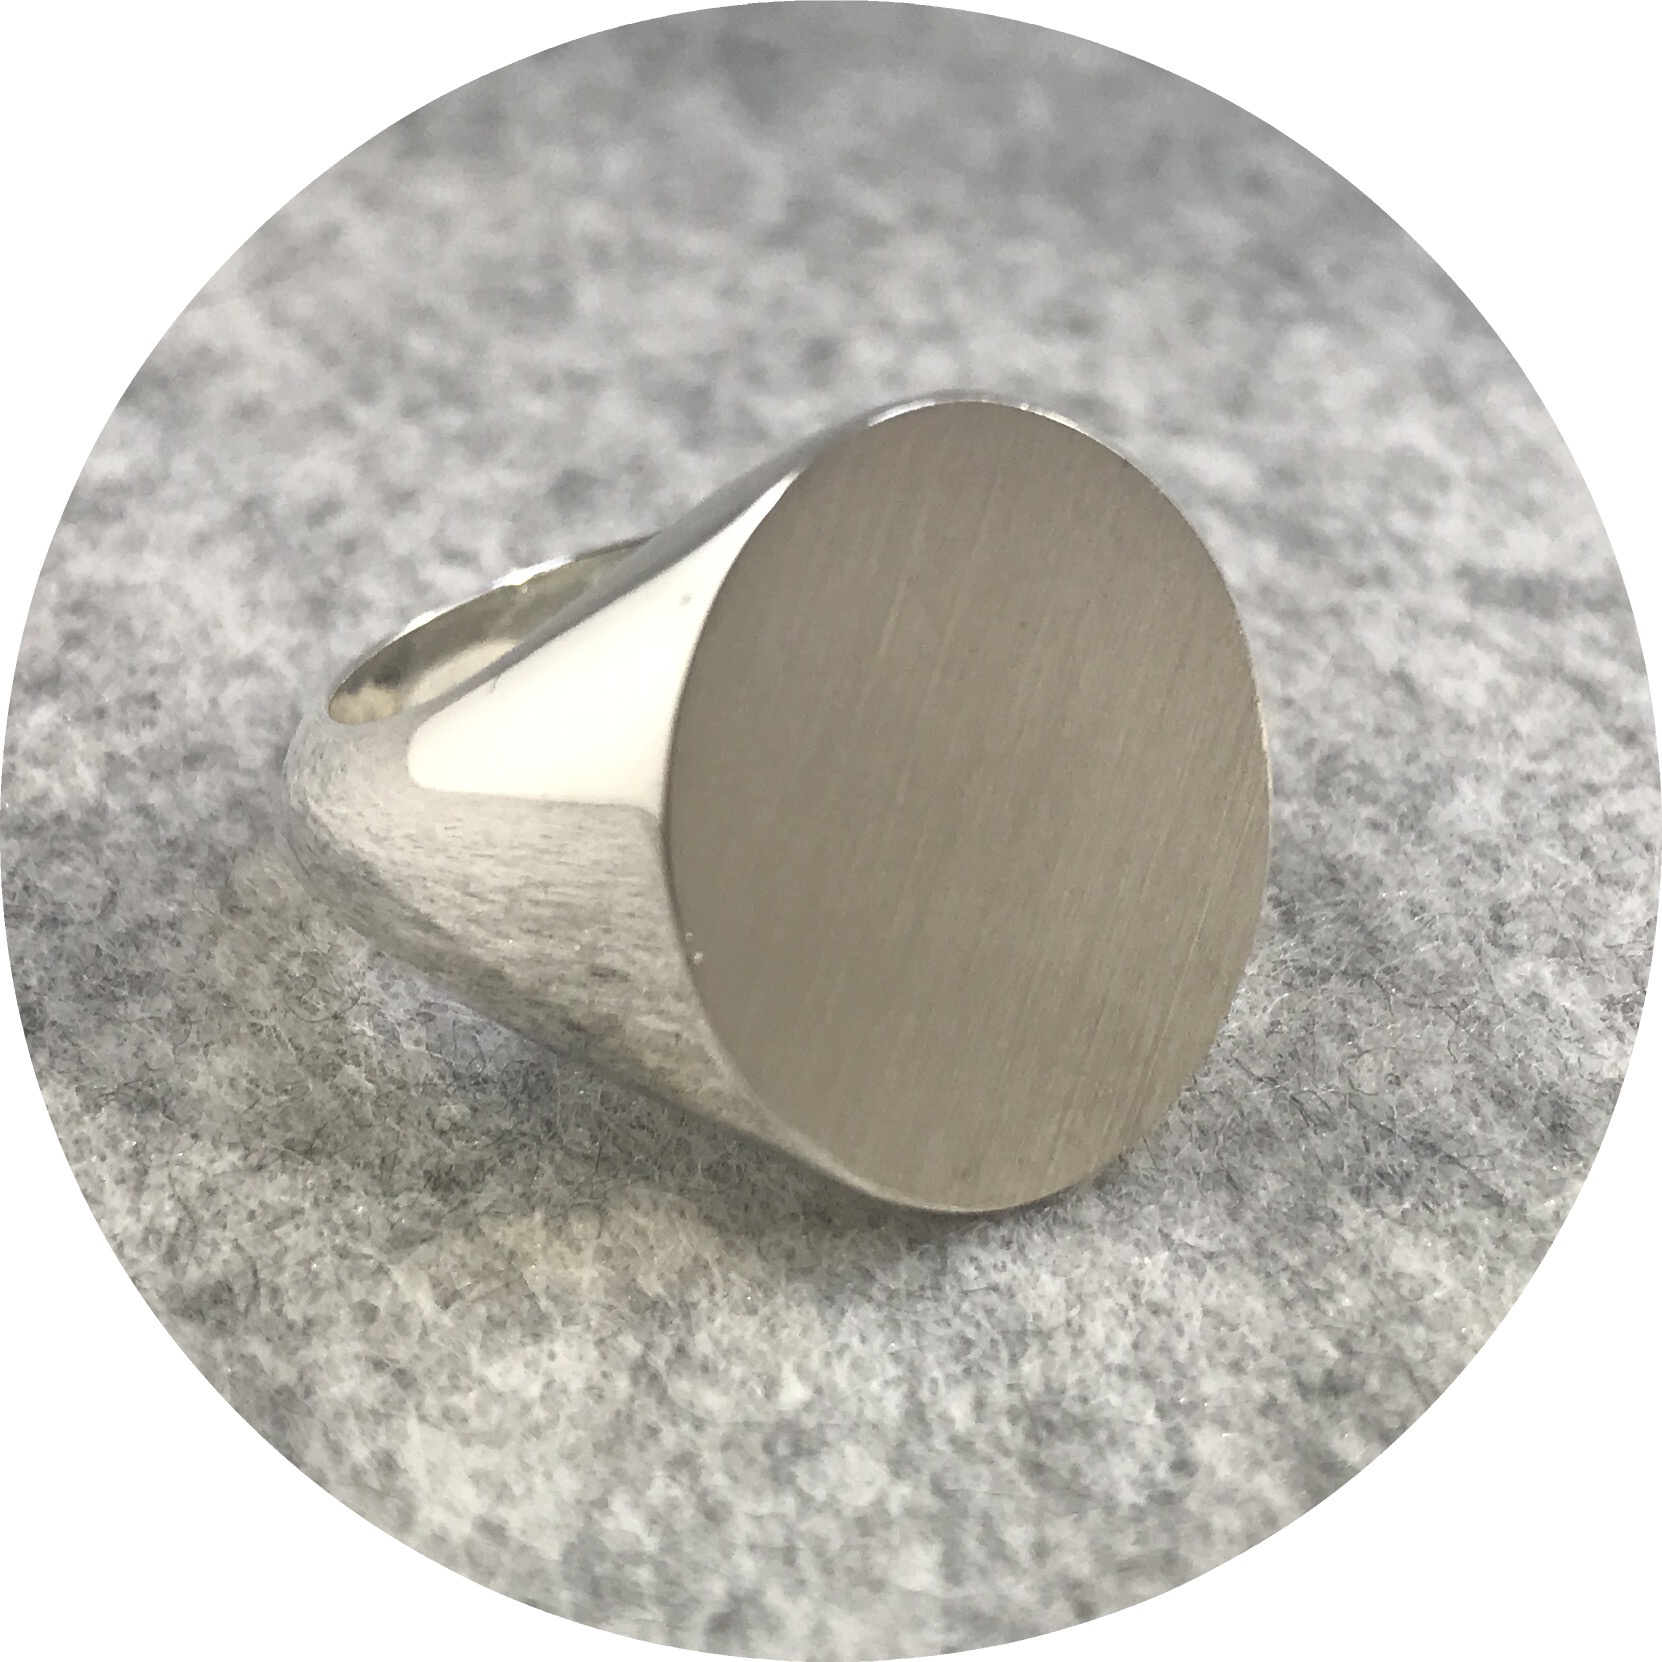 Fin Mahon- Oval Flat top signet ring. Solid sterling silver. Size U.